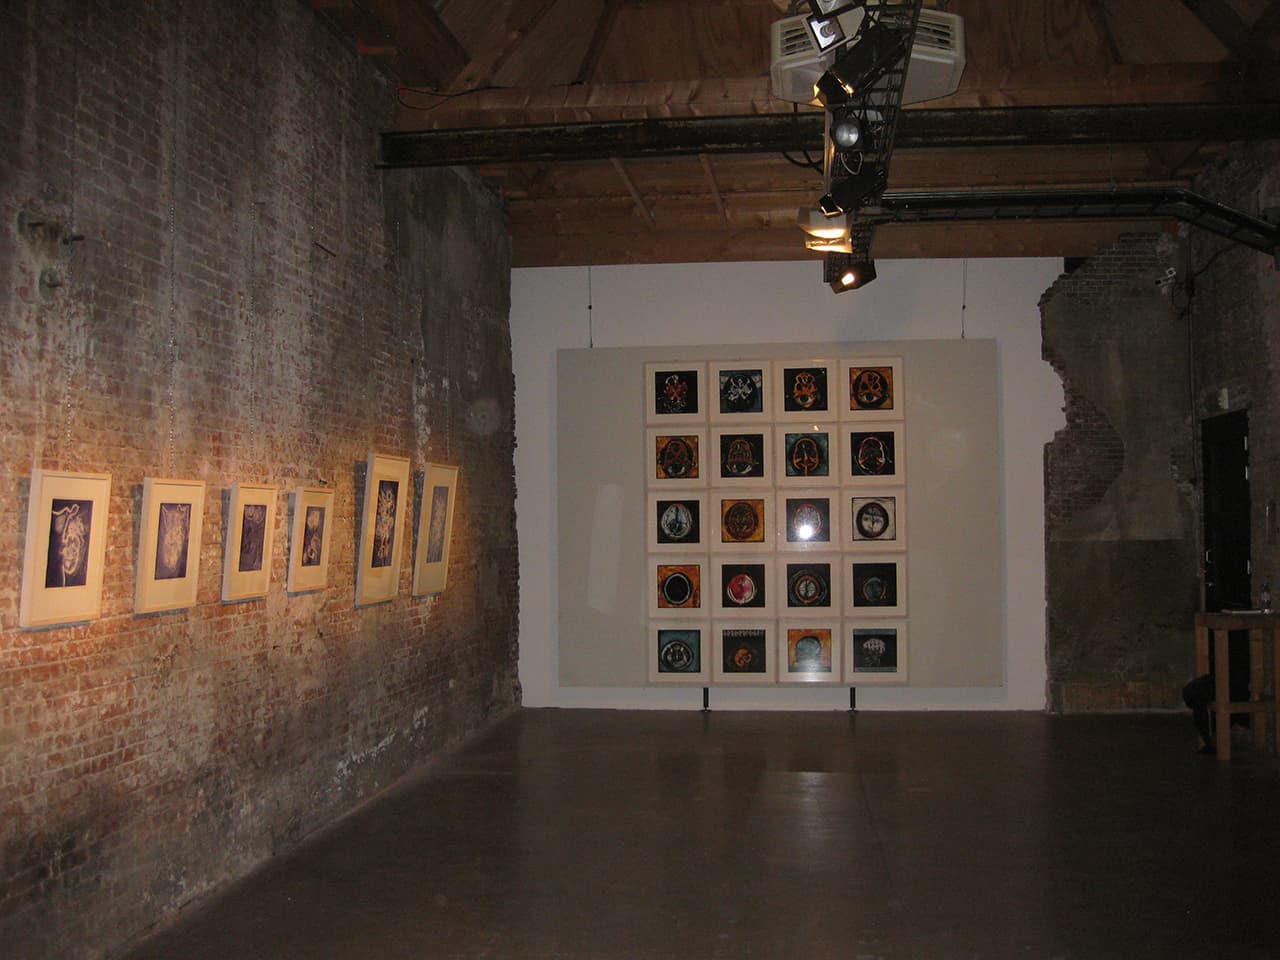 <strong>Cogito Ergo Sum 3</strong>, Susan Aldworth, 20 archival digital prints, 35 x 35 cms each, 2006. Installation at Scheltema Contemporary Gallery, Leiden, 2010.